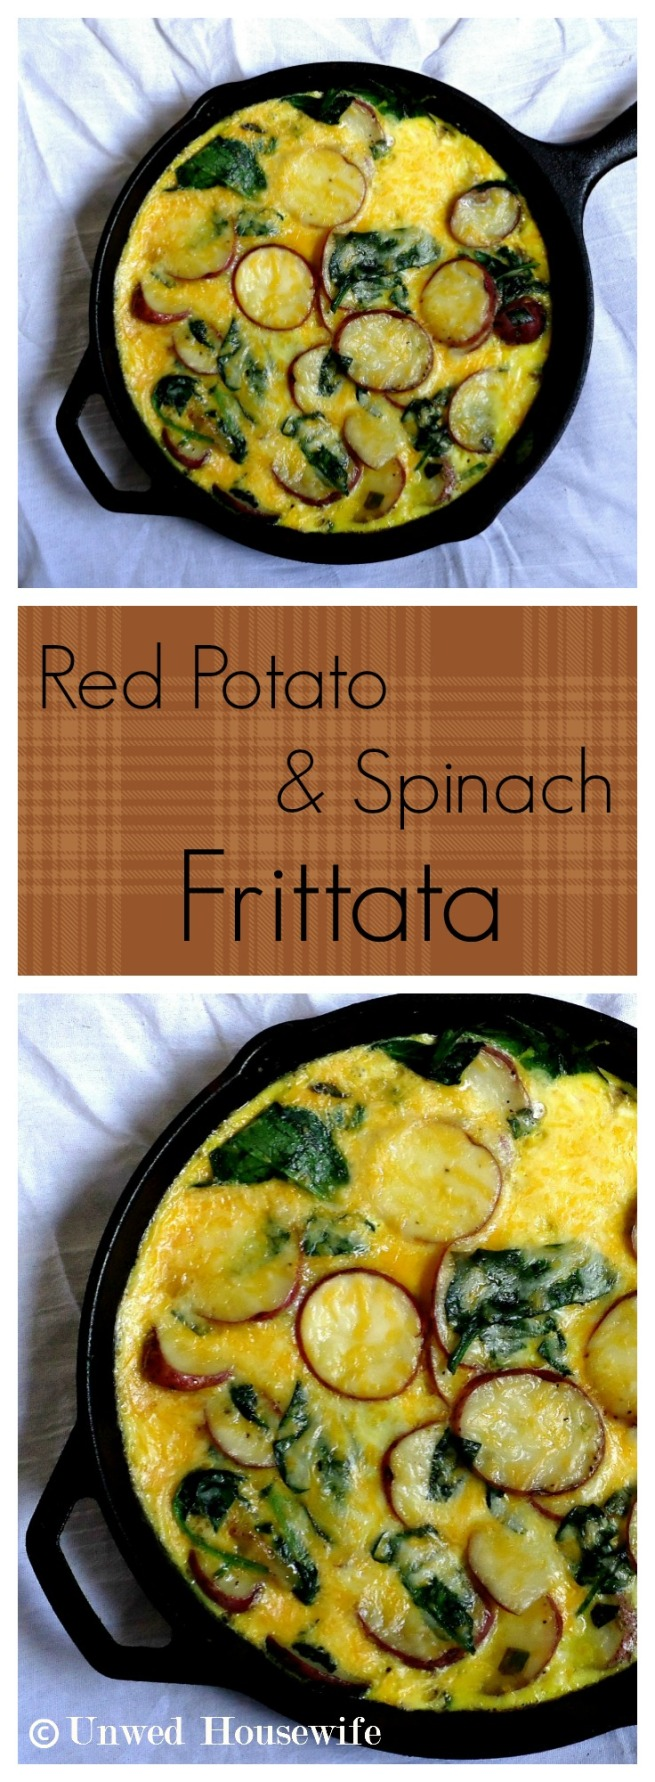 Red Potato and Spinach Frittata Pinterest